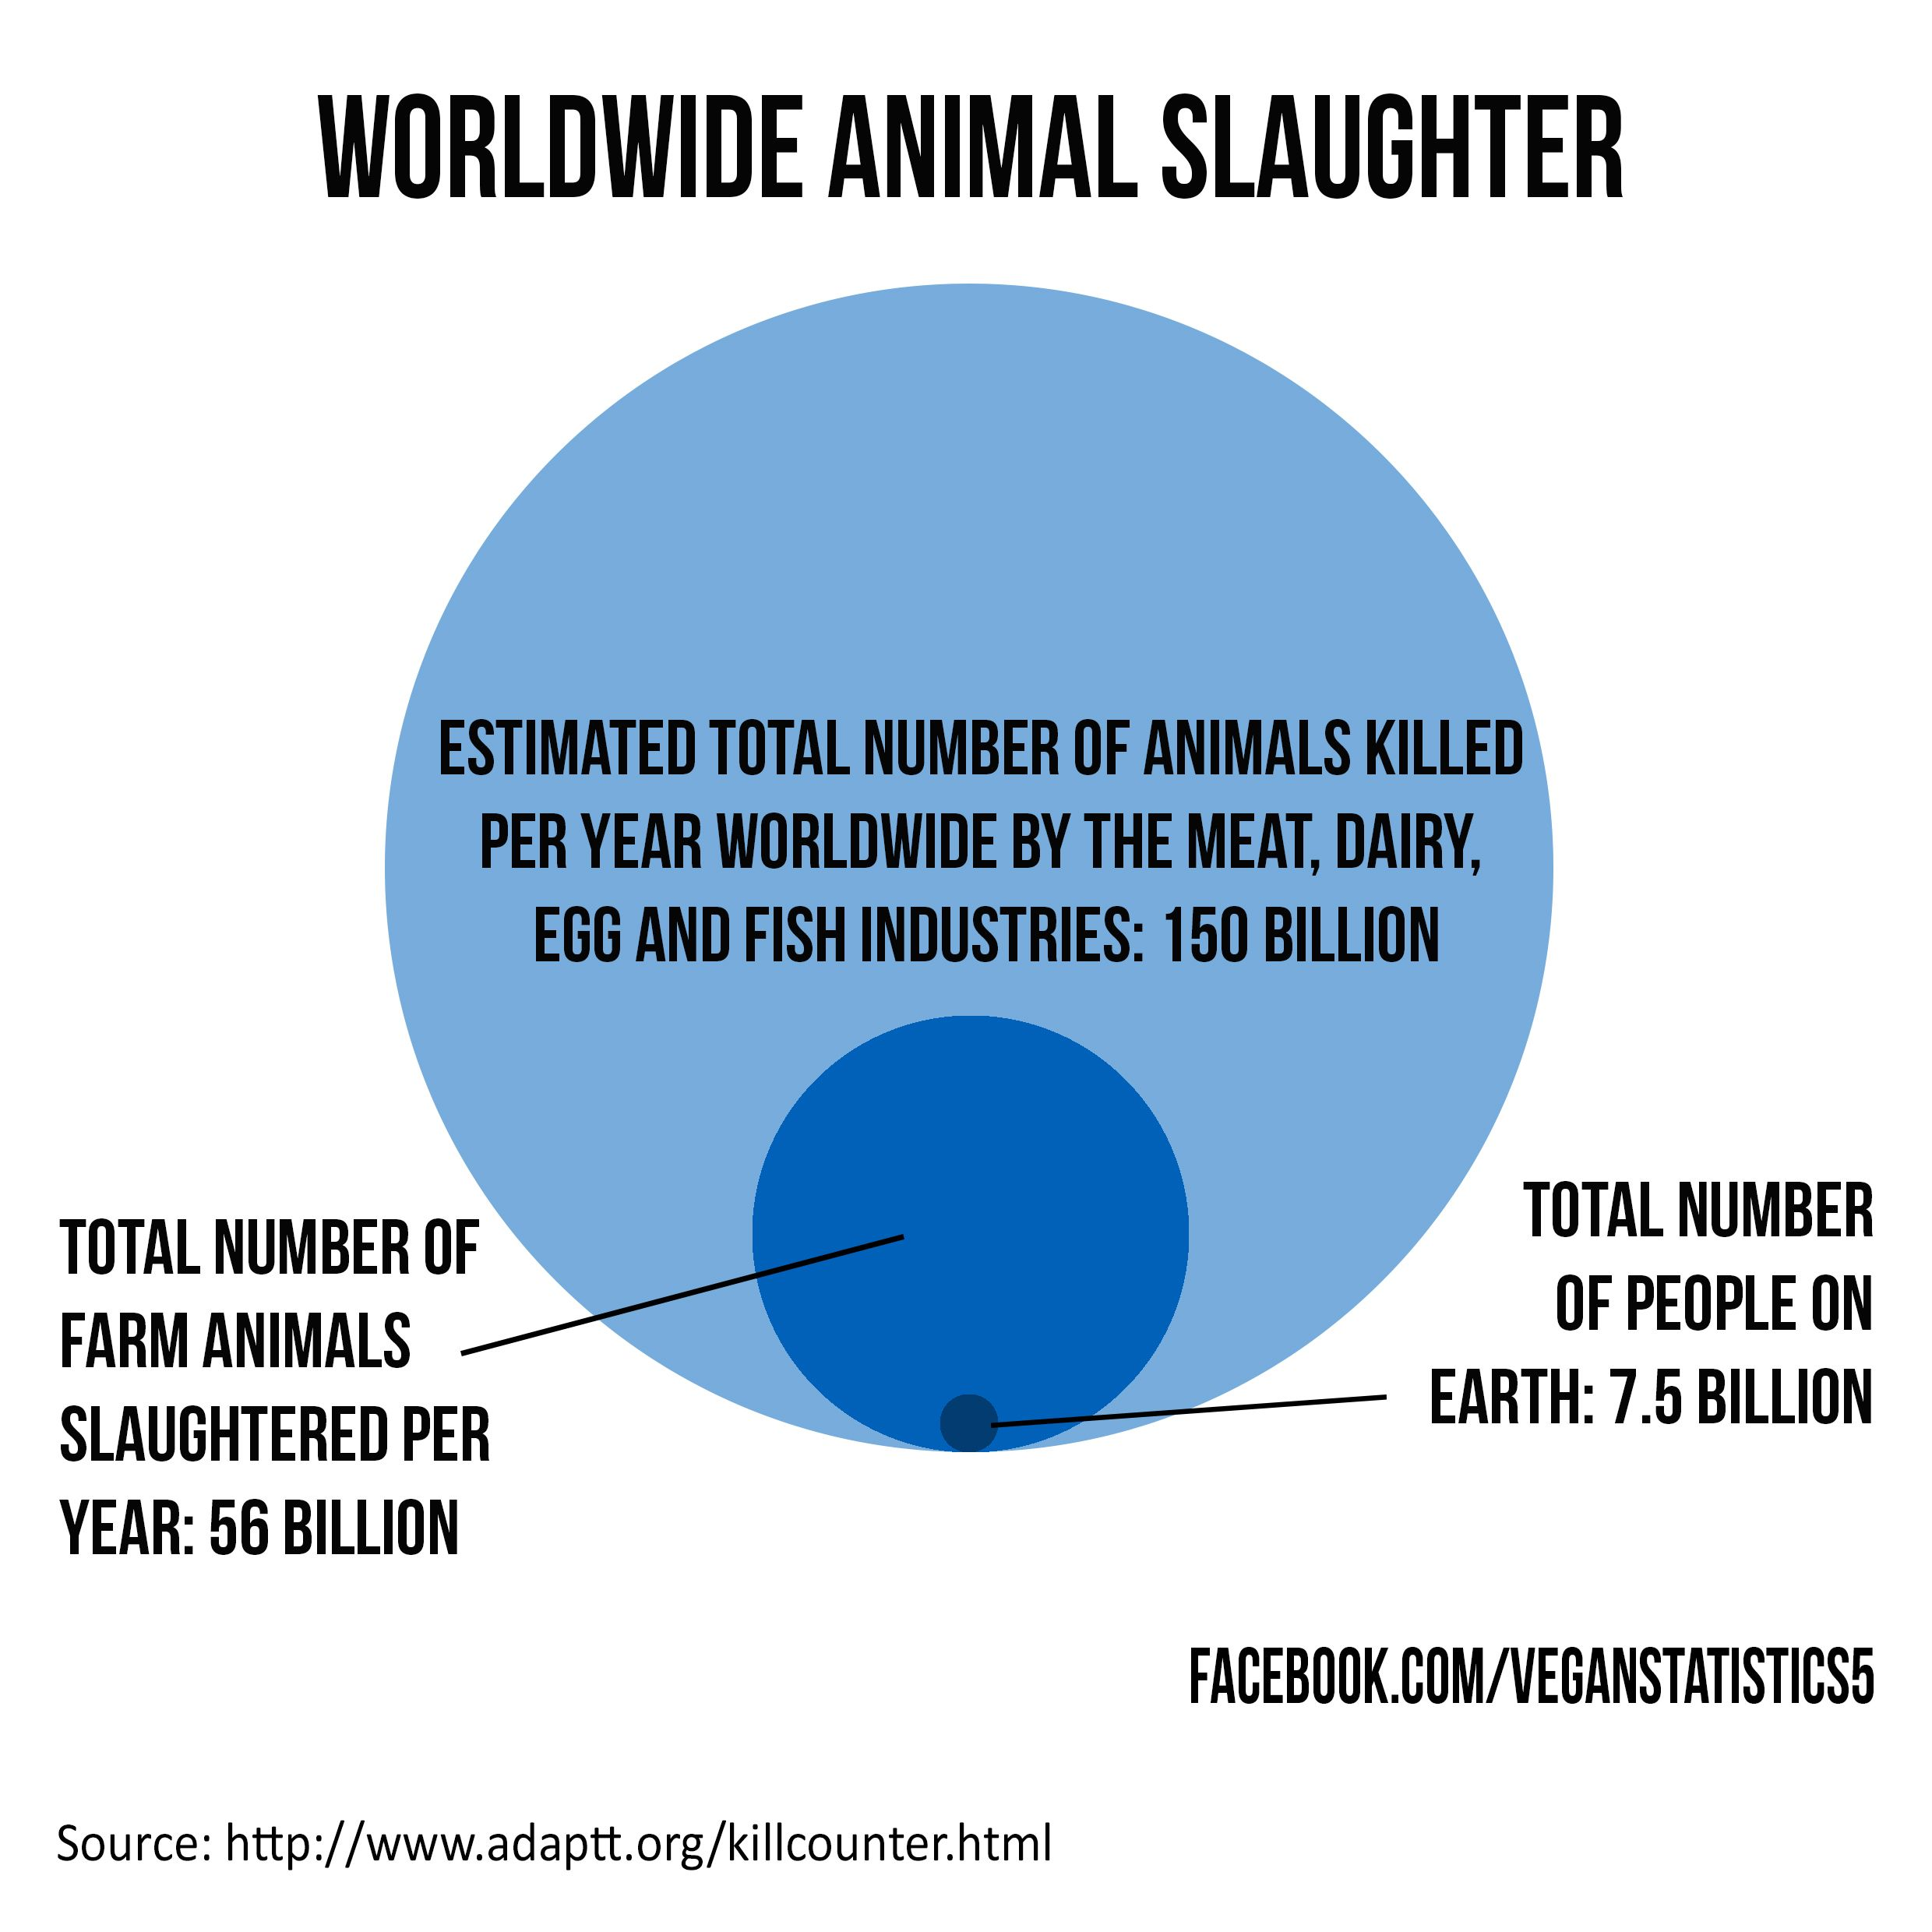 vegan, vegetarian, slaughter, animal rights, farming, animal agriculture,  environment, meat, dairy, eggs, fishing